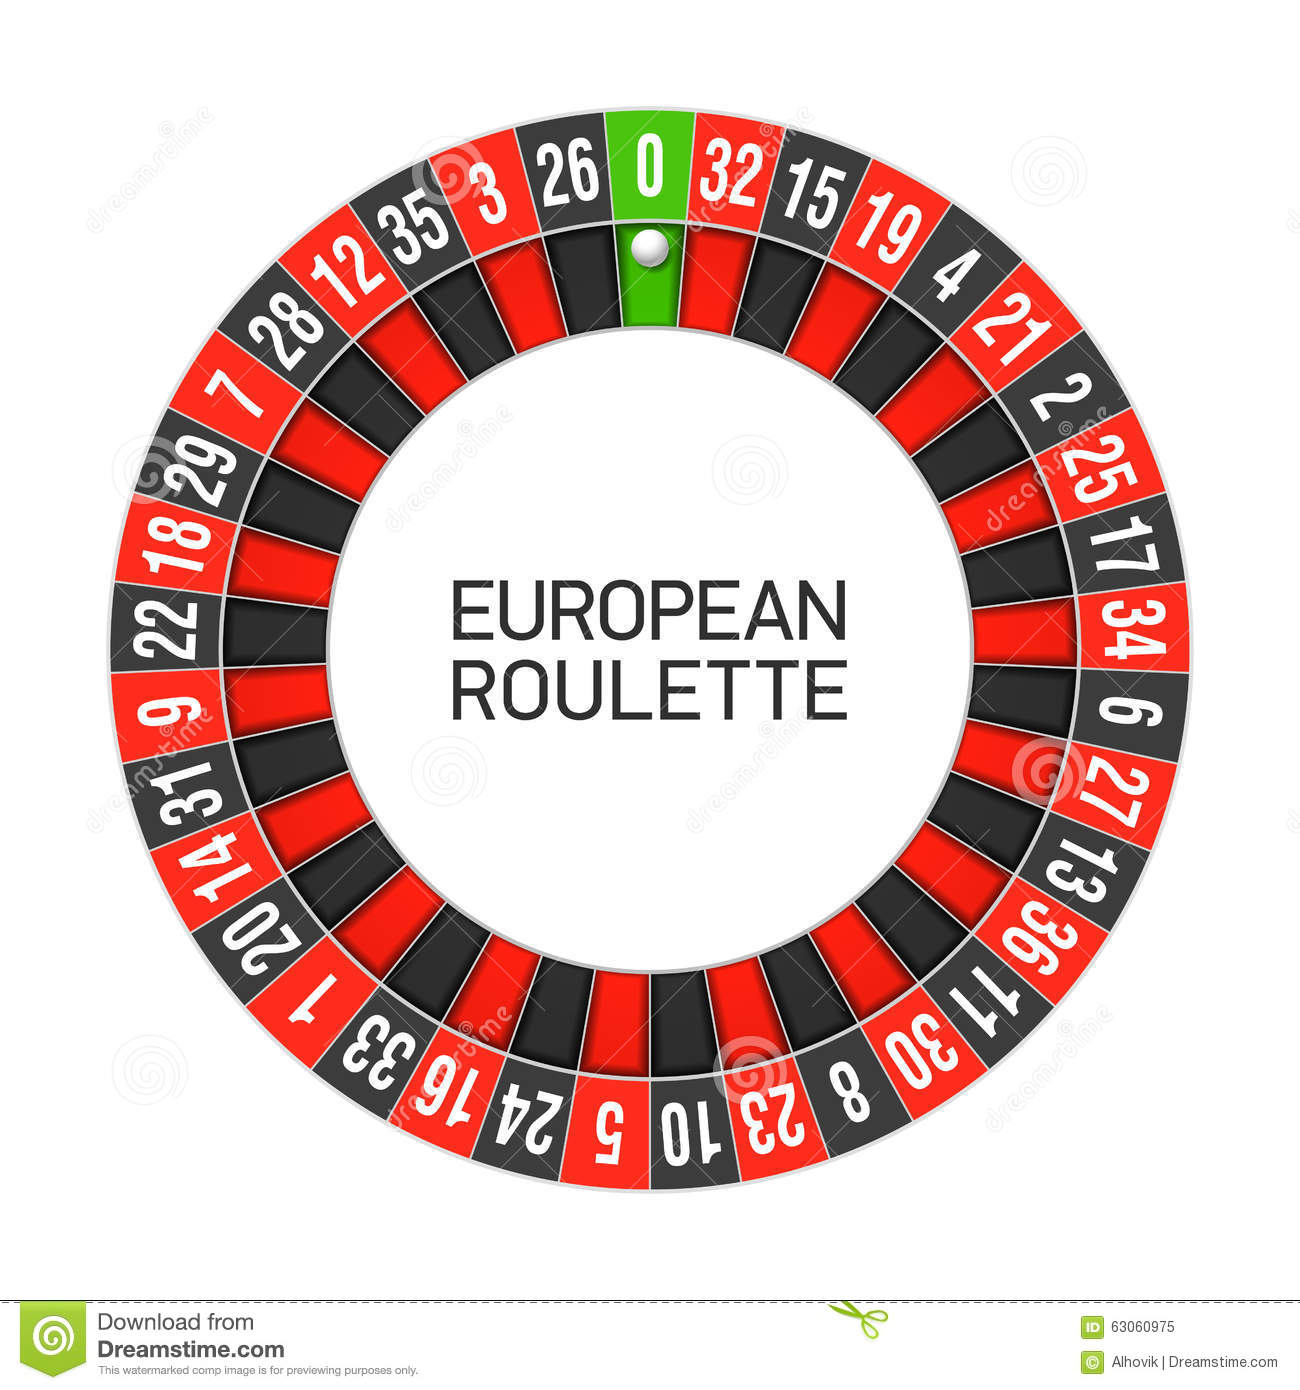 roulette free game for fun